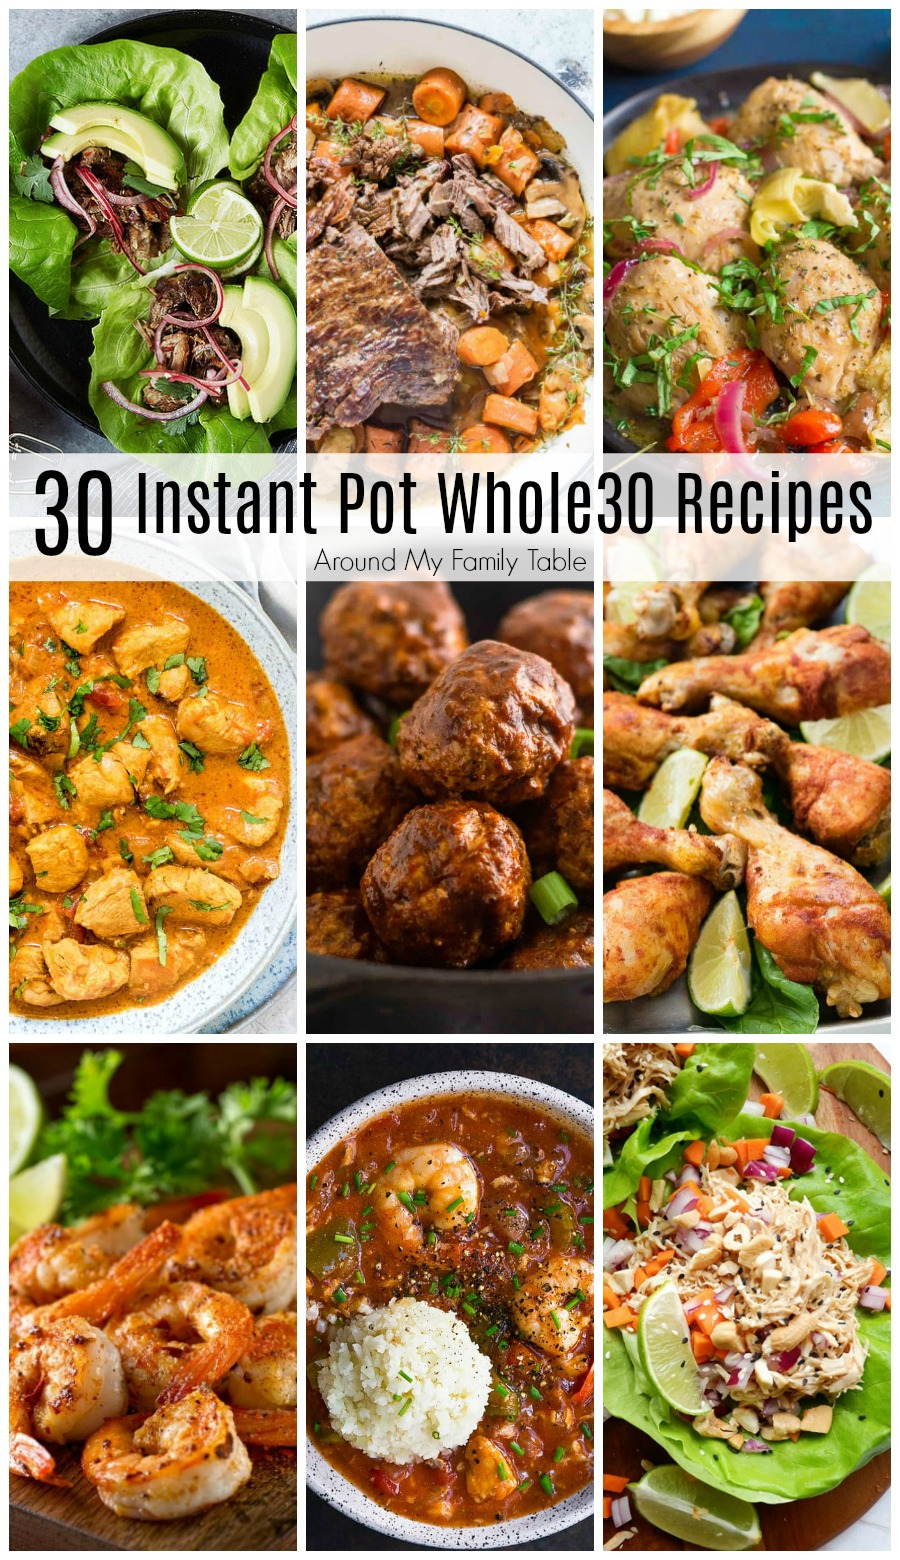 Planning for your Whole30 month doesn't have to be overwhelming.  I've collected a month's worth of delicious Whole30 Instant Pot Recipes to get you through the month. #whole30 #instantpot